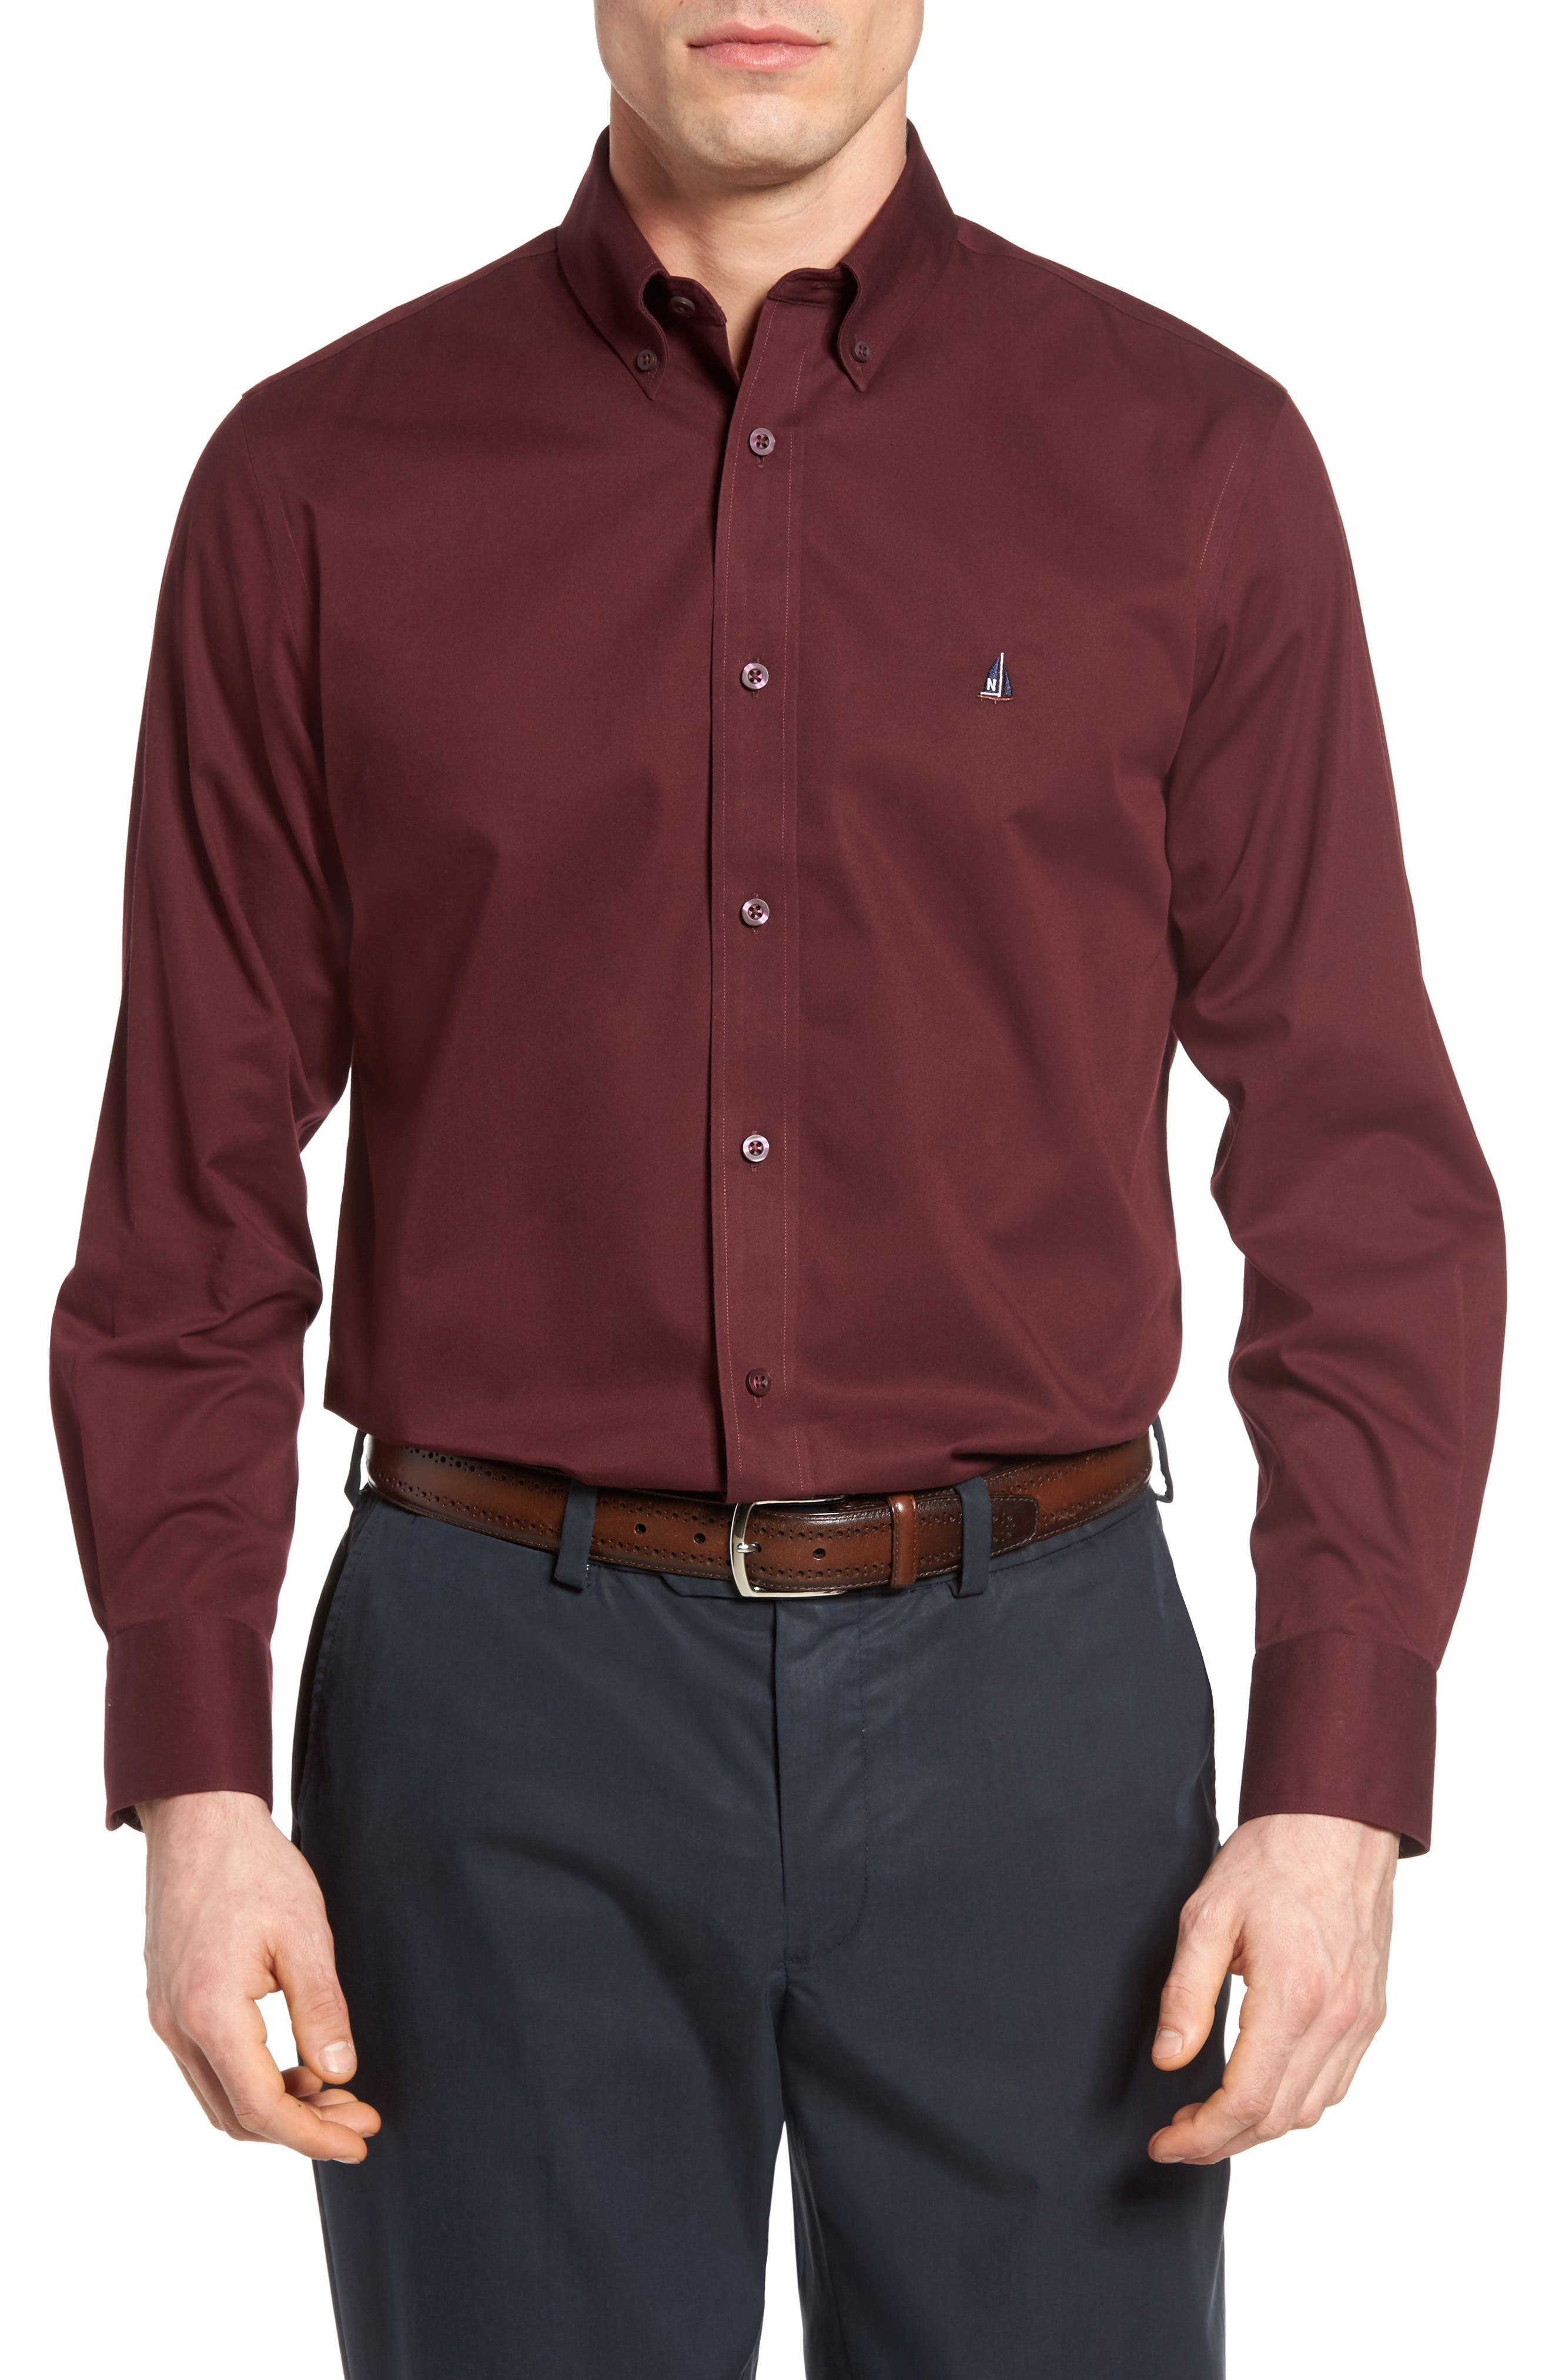 NORDSTROM MEN'S SHOP, Smartcare<sup>™</sup> Traditional Fit Twill Boat Shirt, Main thumbnail 1, color, BURGUNDY ROYALE